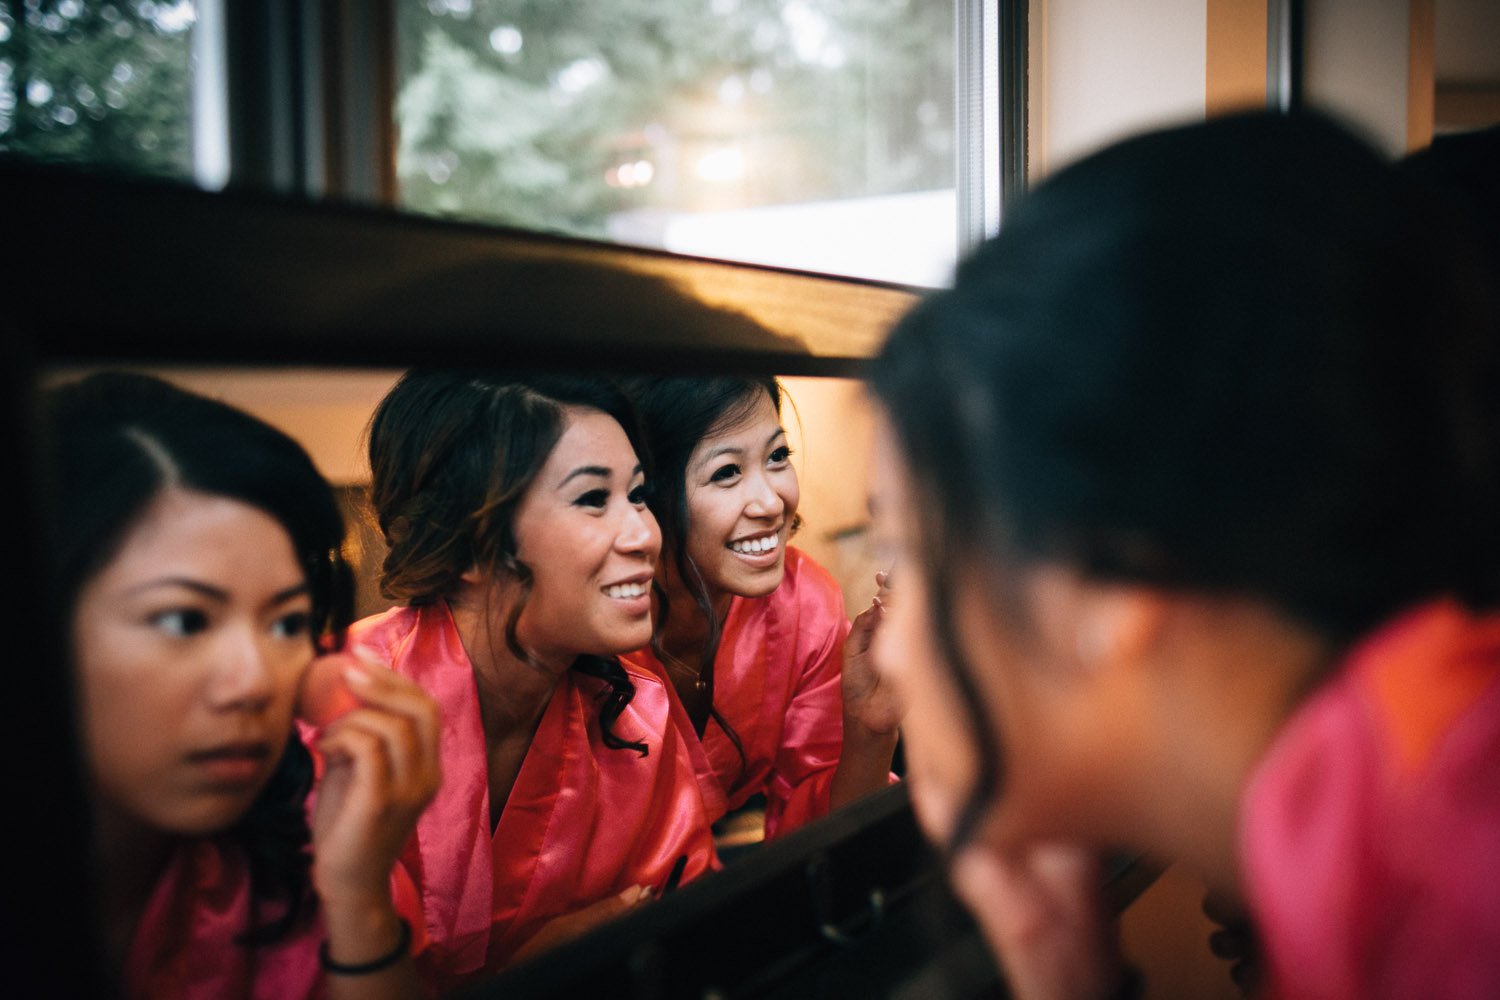 west vancouver wedding bridesmaids photographer noyo creative